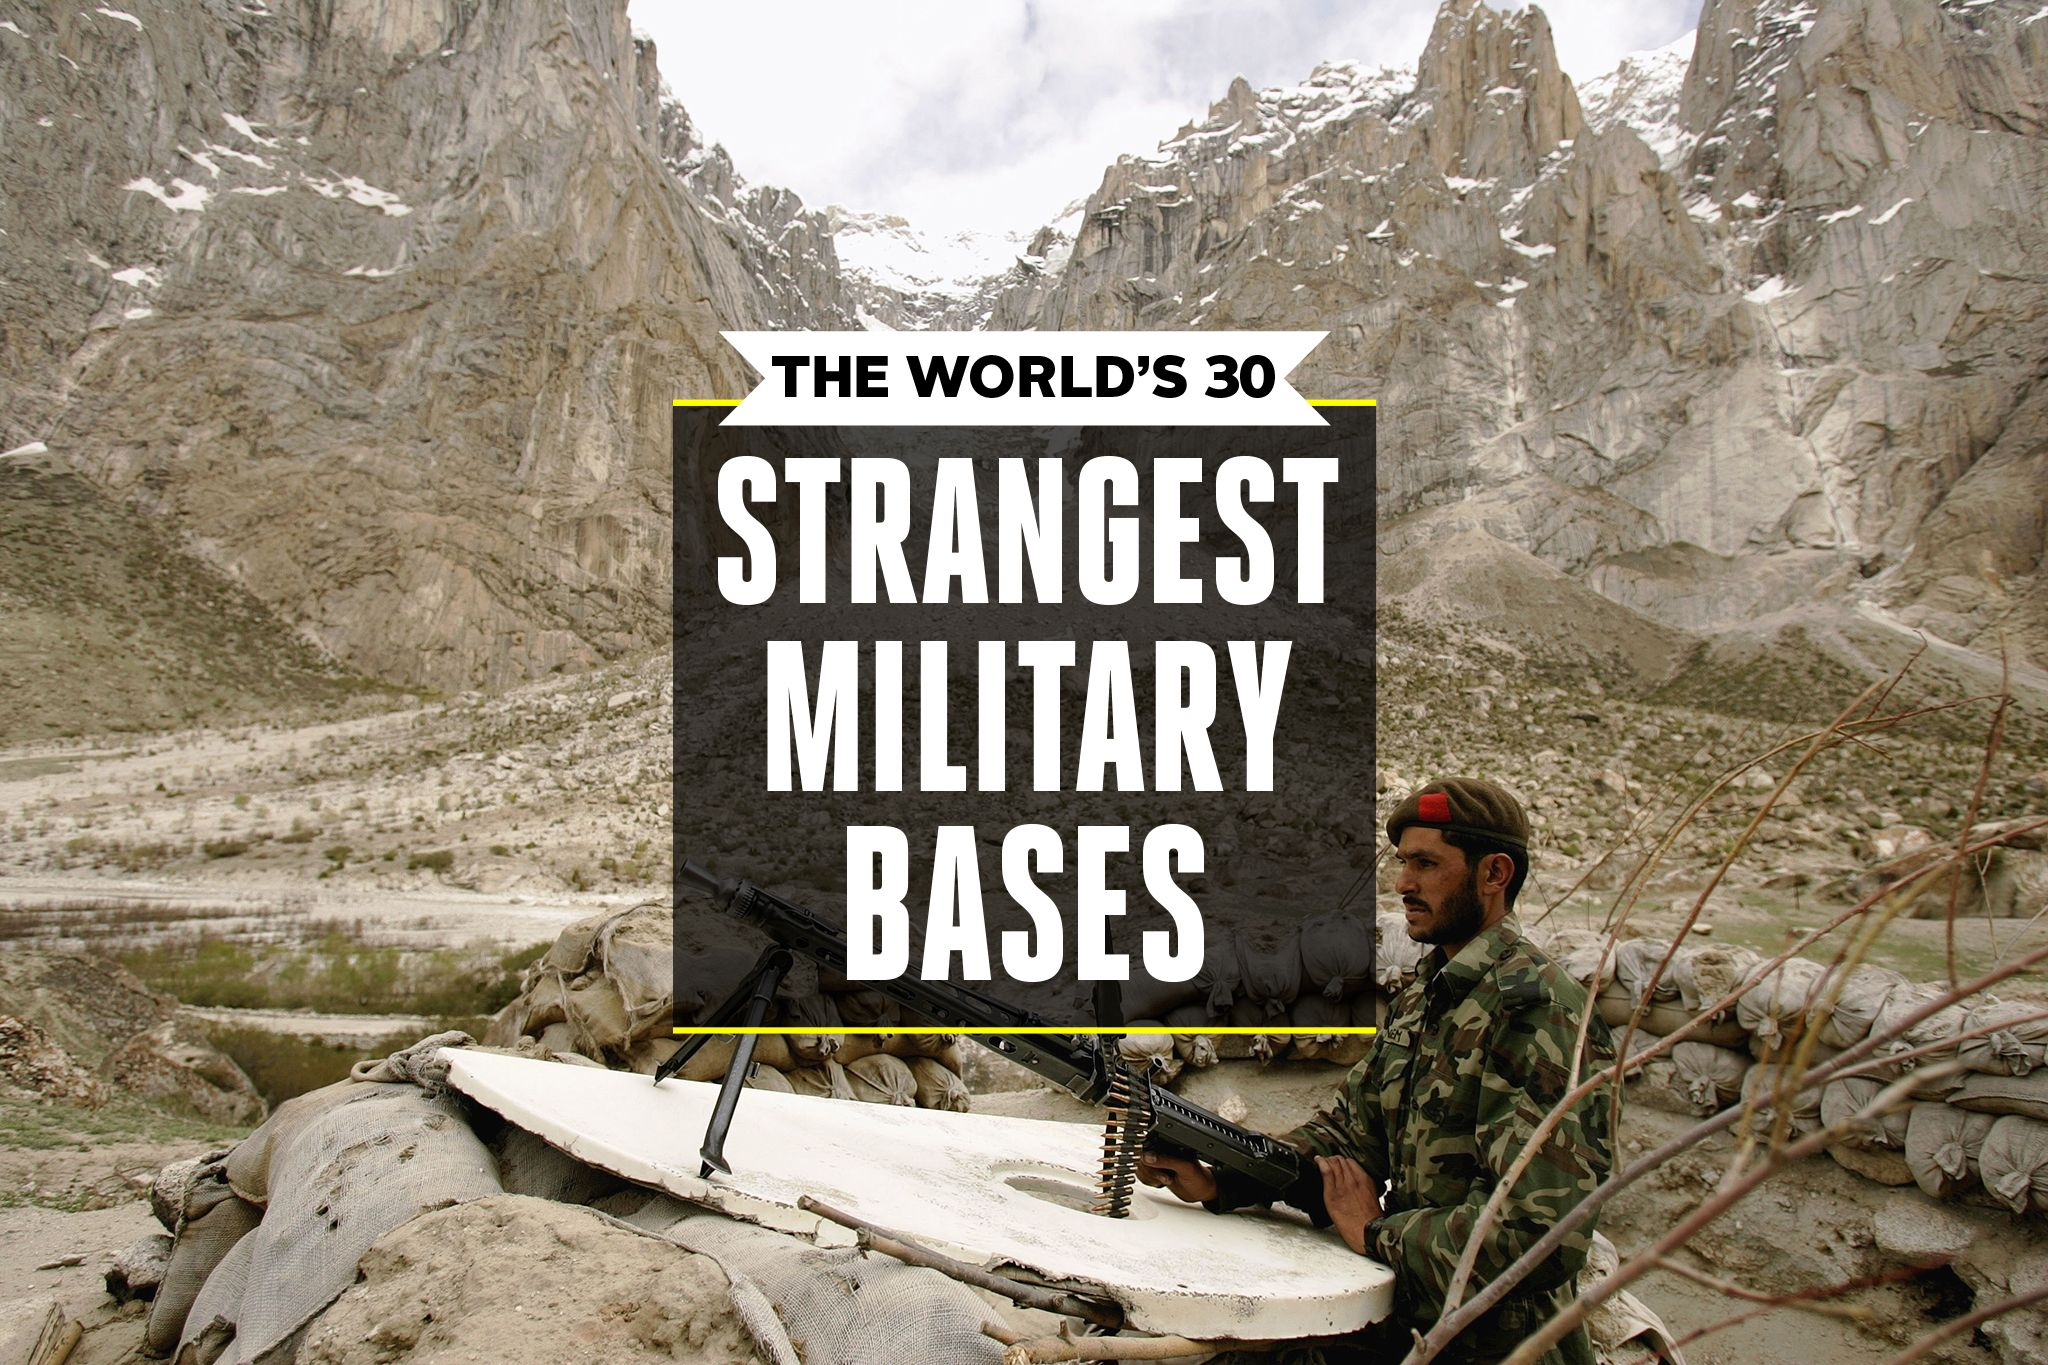 The World's 30 Strangest Military Bases